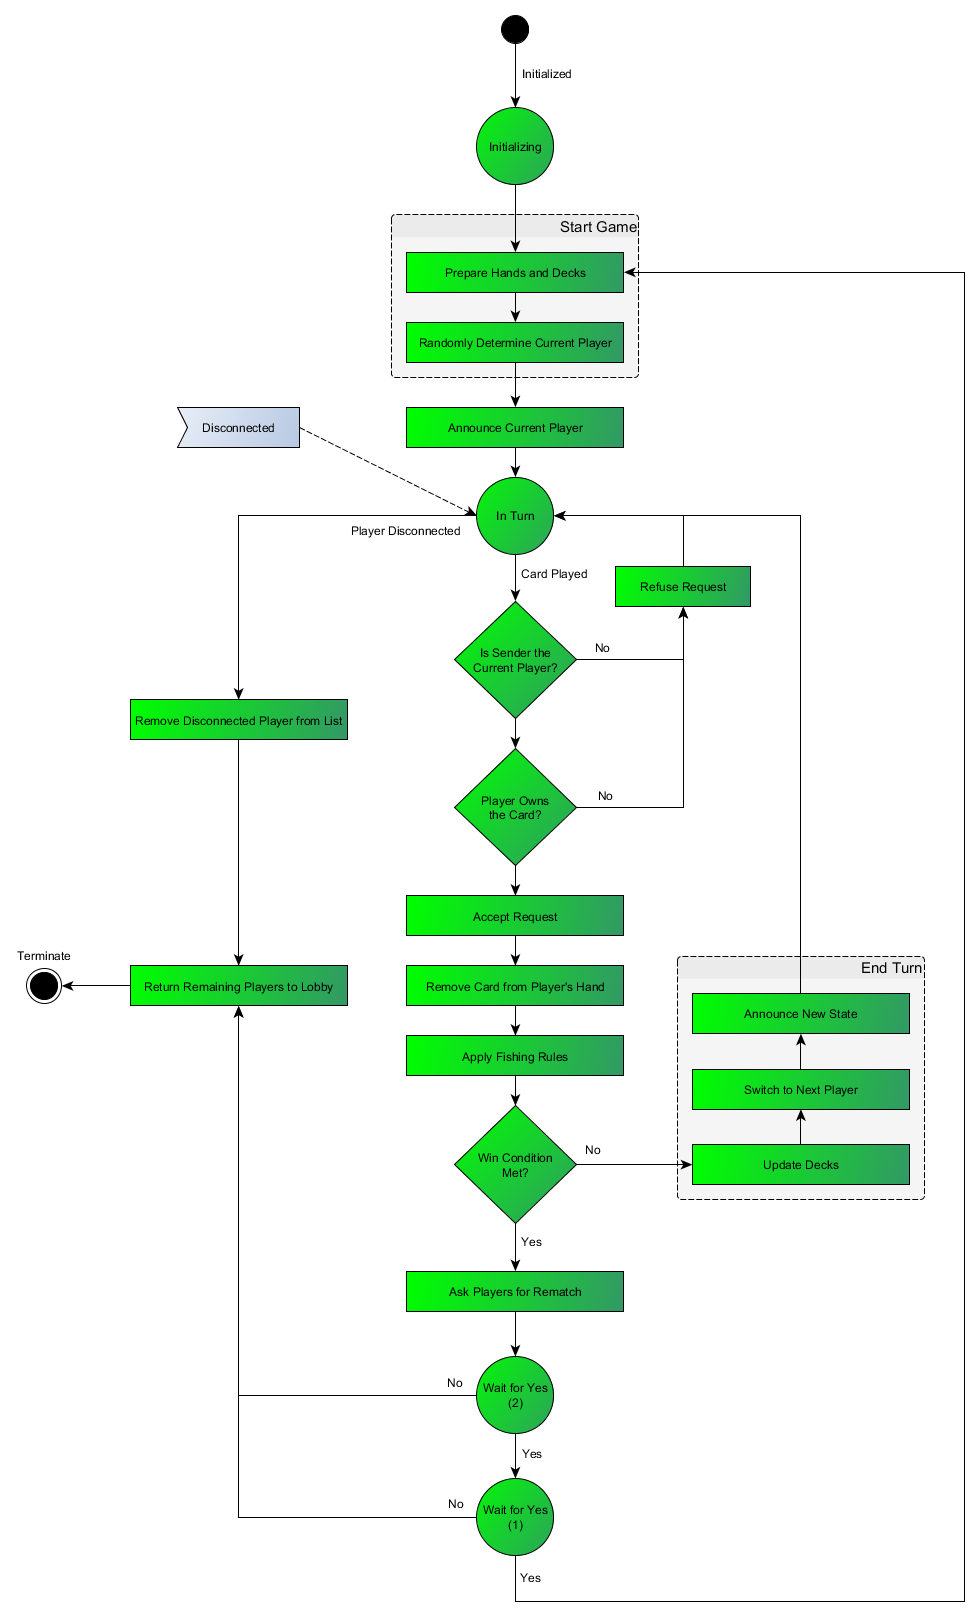 s flow diagram for handling the game logic